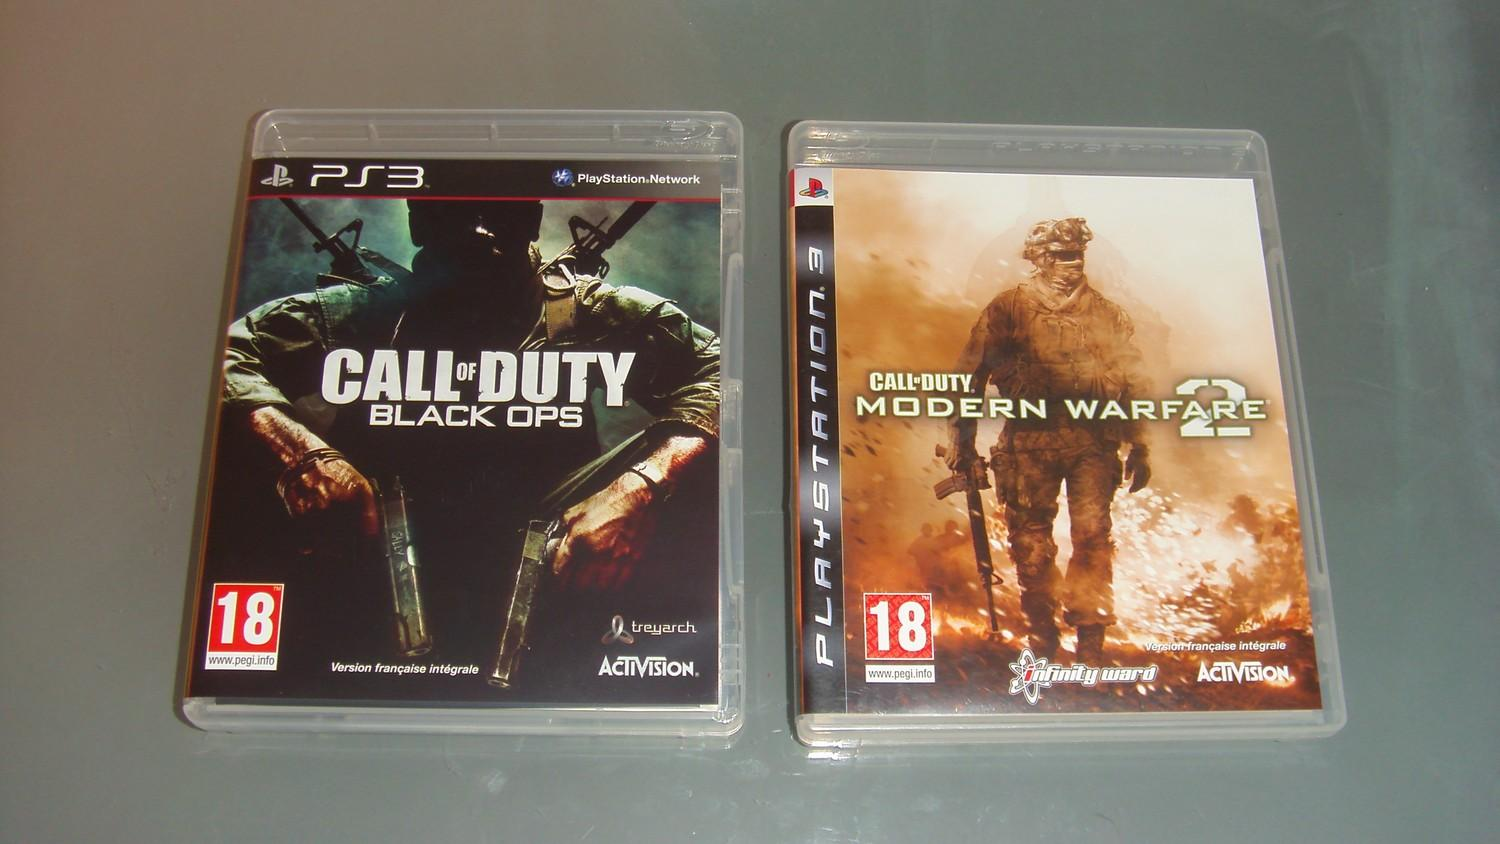 ops weebeetroc1 [arrivage] Call Of Duty Black Ops sur PlayStation 3